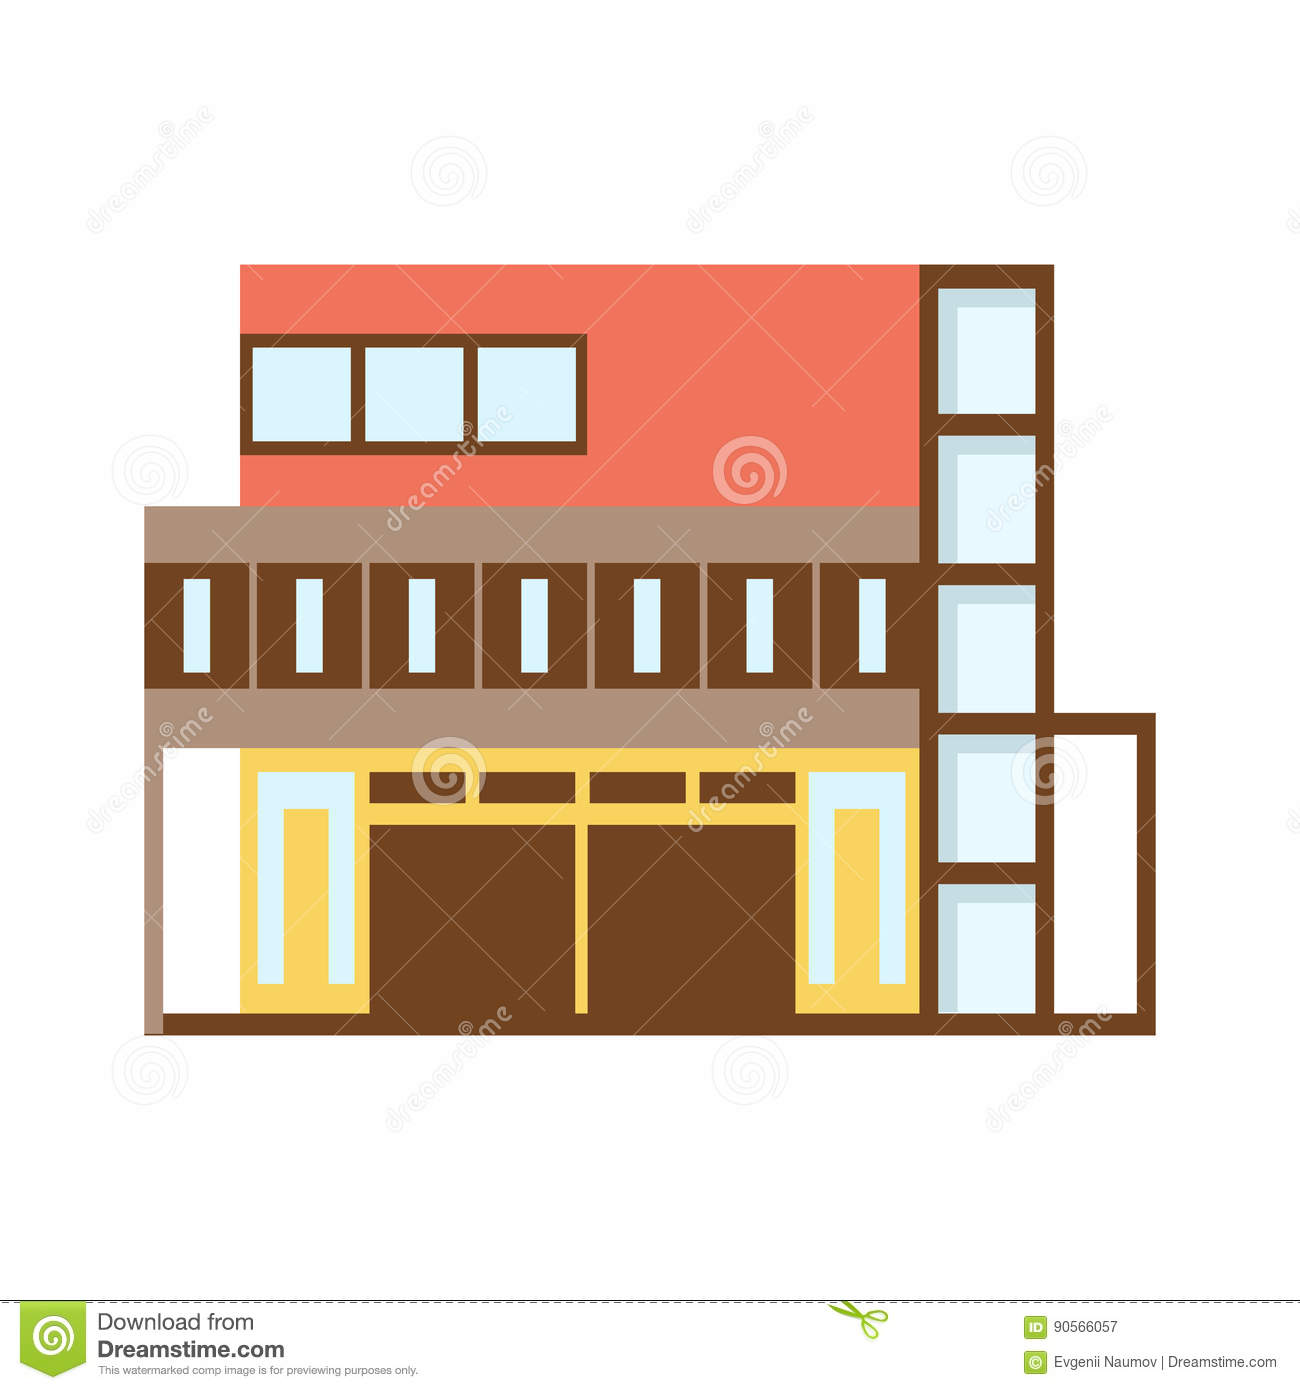 Brown And Red Shopping Mall Modern Building Exterior Design Project Template Isolated Flat Illustration Stock Vector Illustration Of Project Hightech 90566057